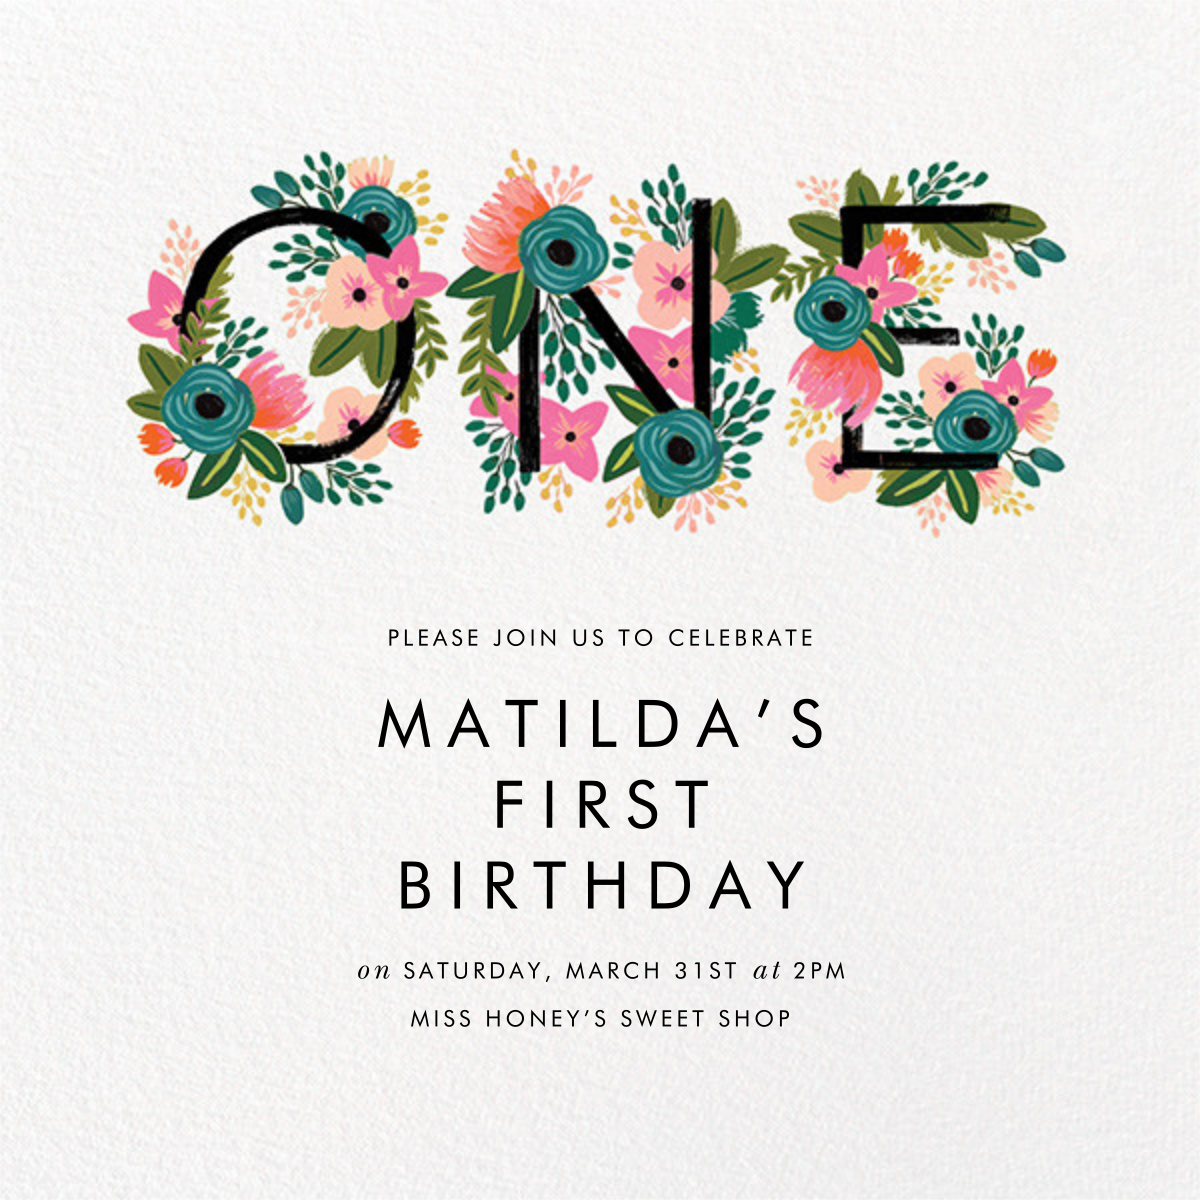 One Blooming Birthday - White - Rifle Paper Co. - 1st birthday